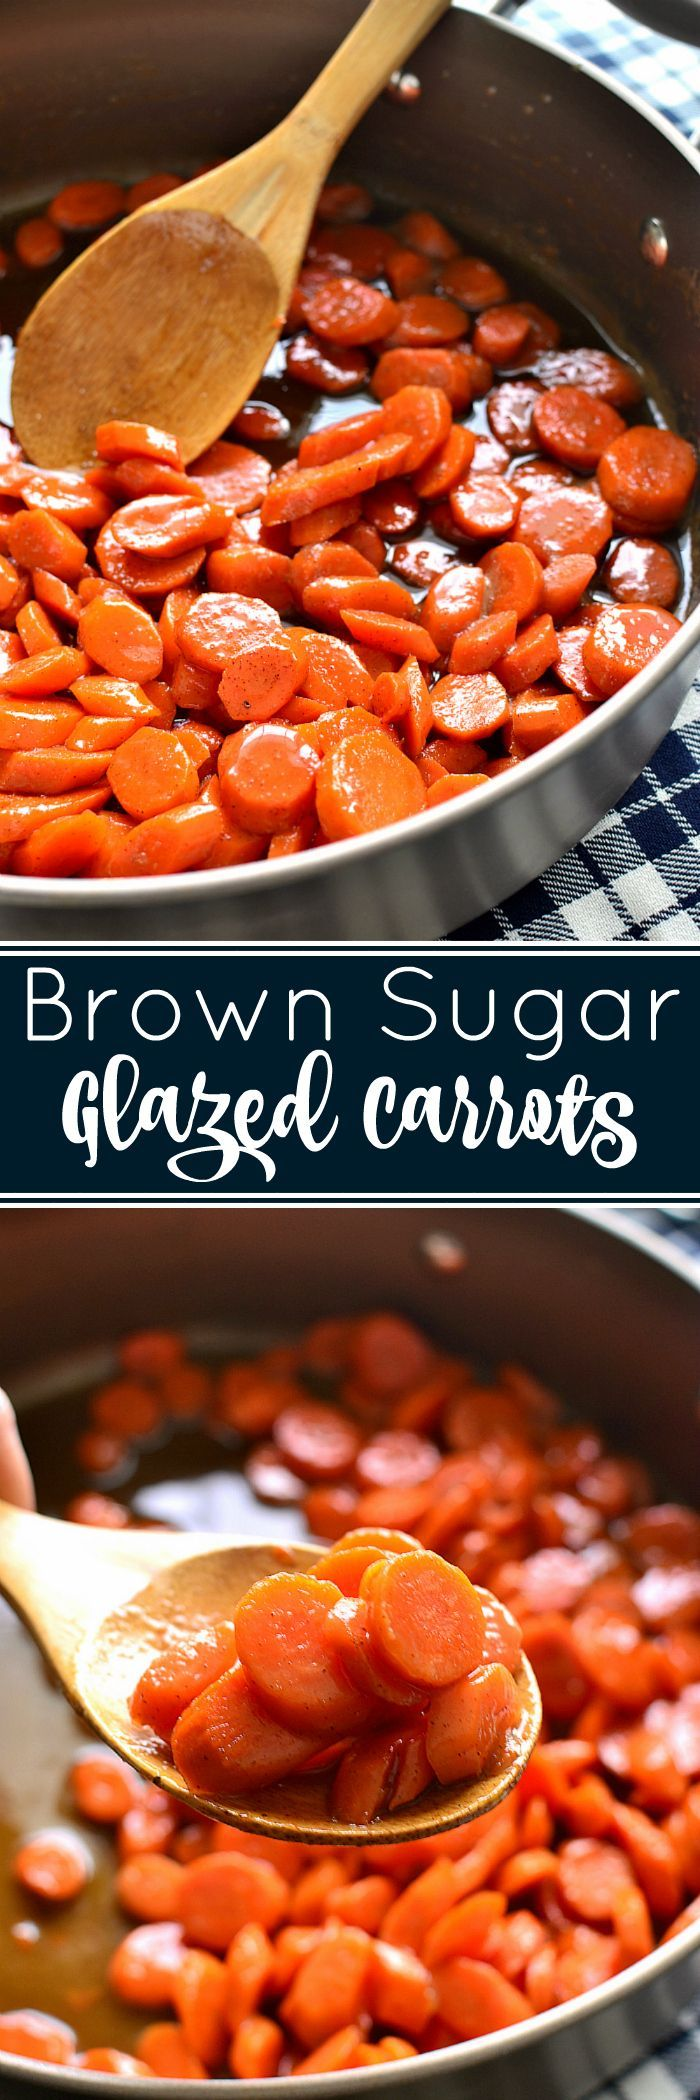 These Brown Sugar-Glazed Carrots take carrots to a whole new level! Made with just 4 delicious ingredients, they come together quickly and make the perfect holiday side dish! #holidayhosting @anolon: